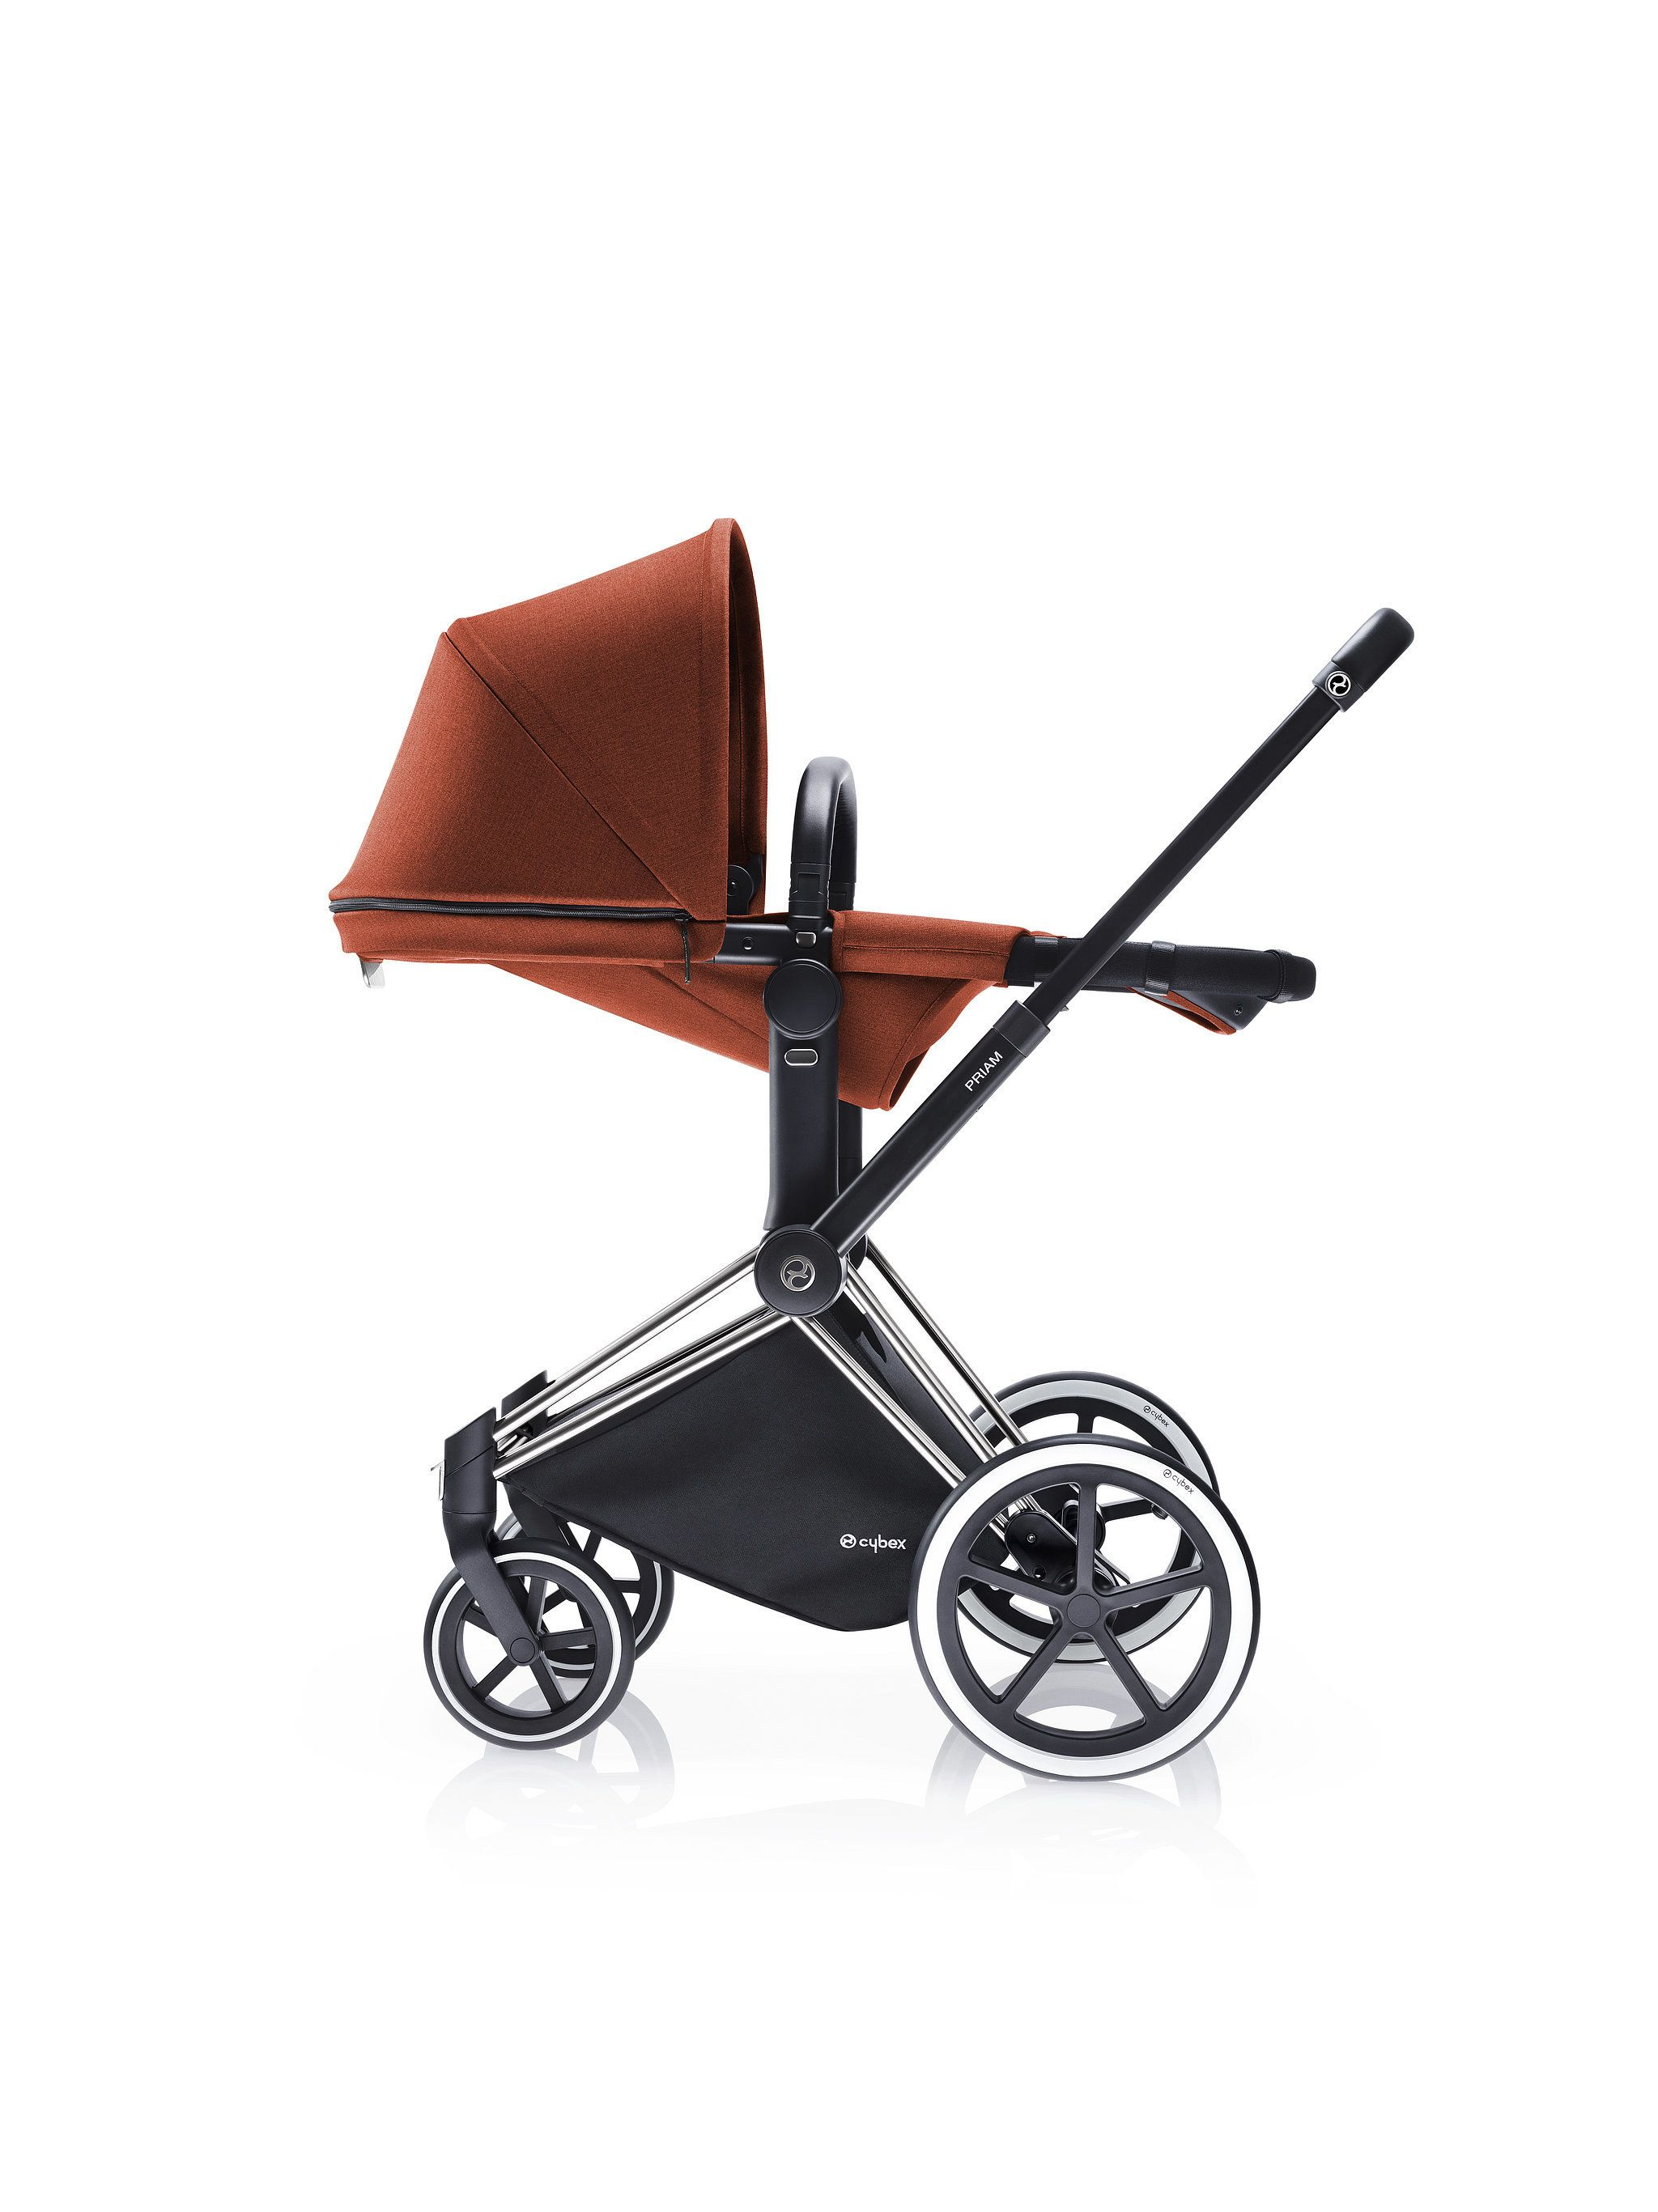 a80aeb753 This Stroller Costs $1,200 and We Actually Think It's Worth Every Penny Cybex  Priam, Kinder